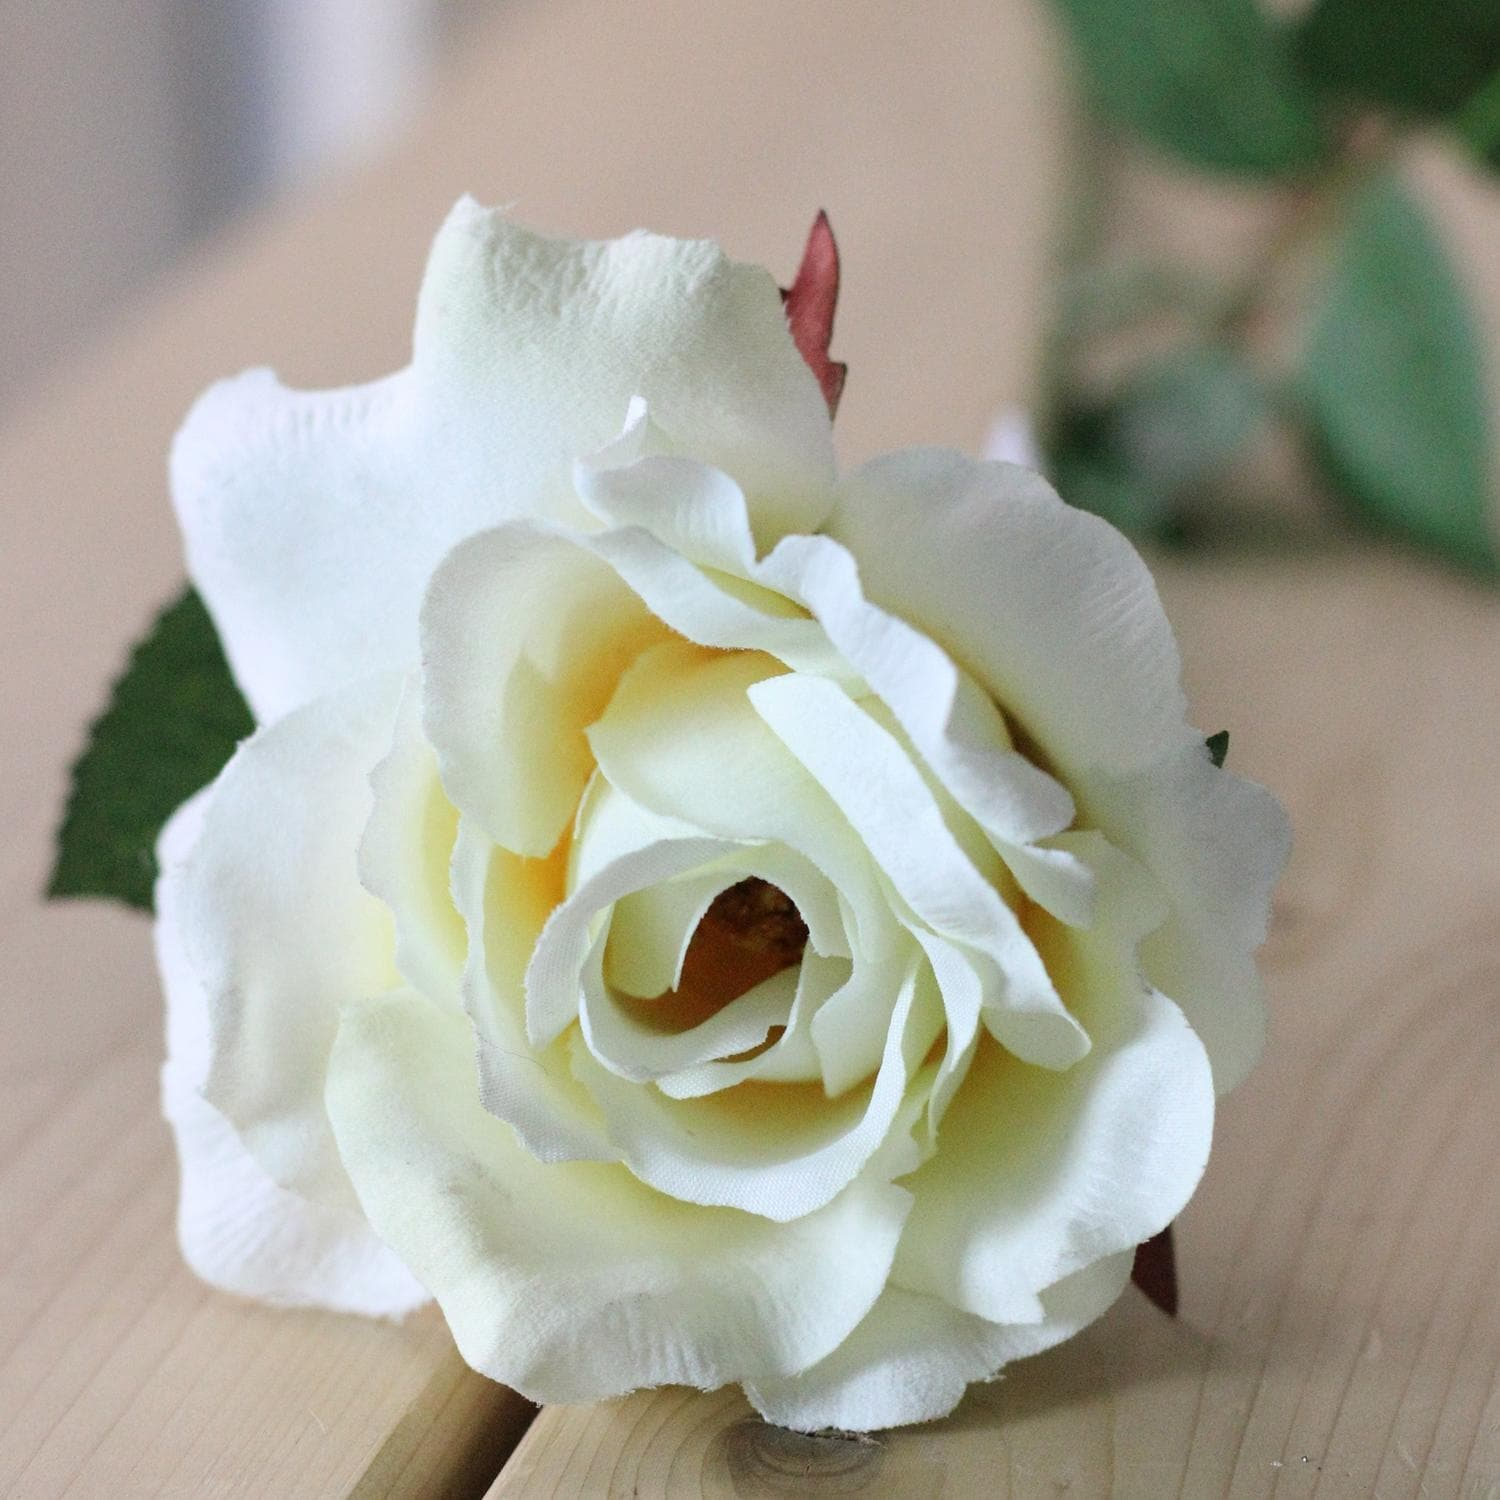 22 Ivory Colored Decorative Mid Bloom Rose Artificial Floral Craft